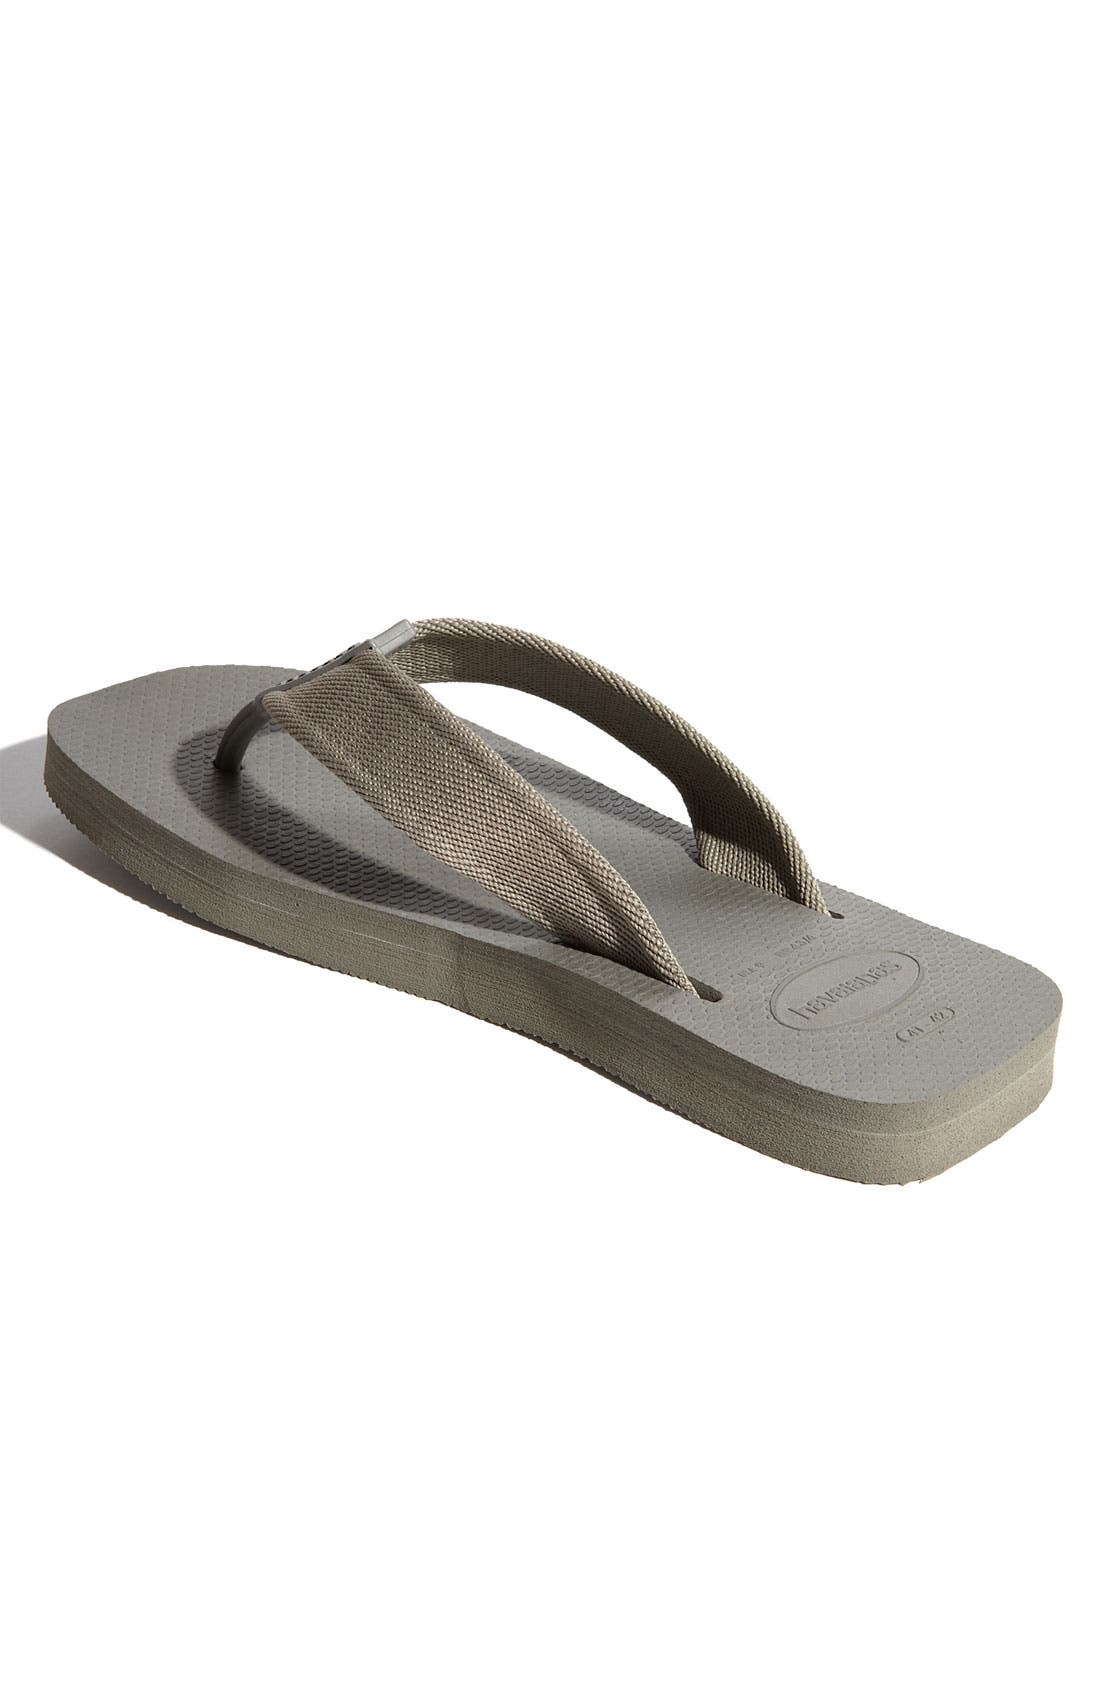 Alternate Image 2  - Havaianas 'Urban' Flip Flop (Men)